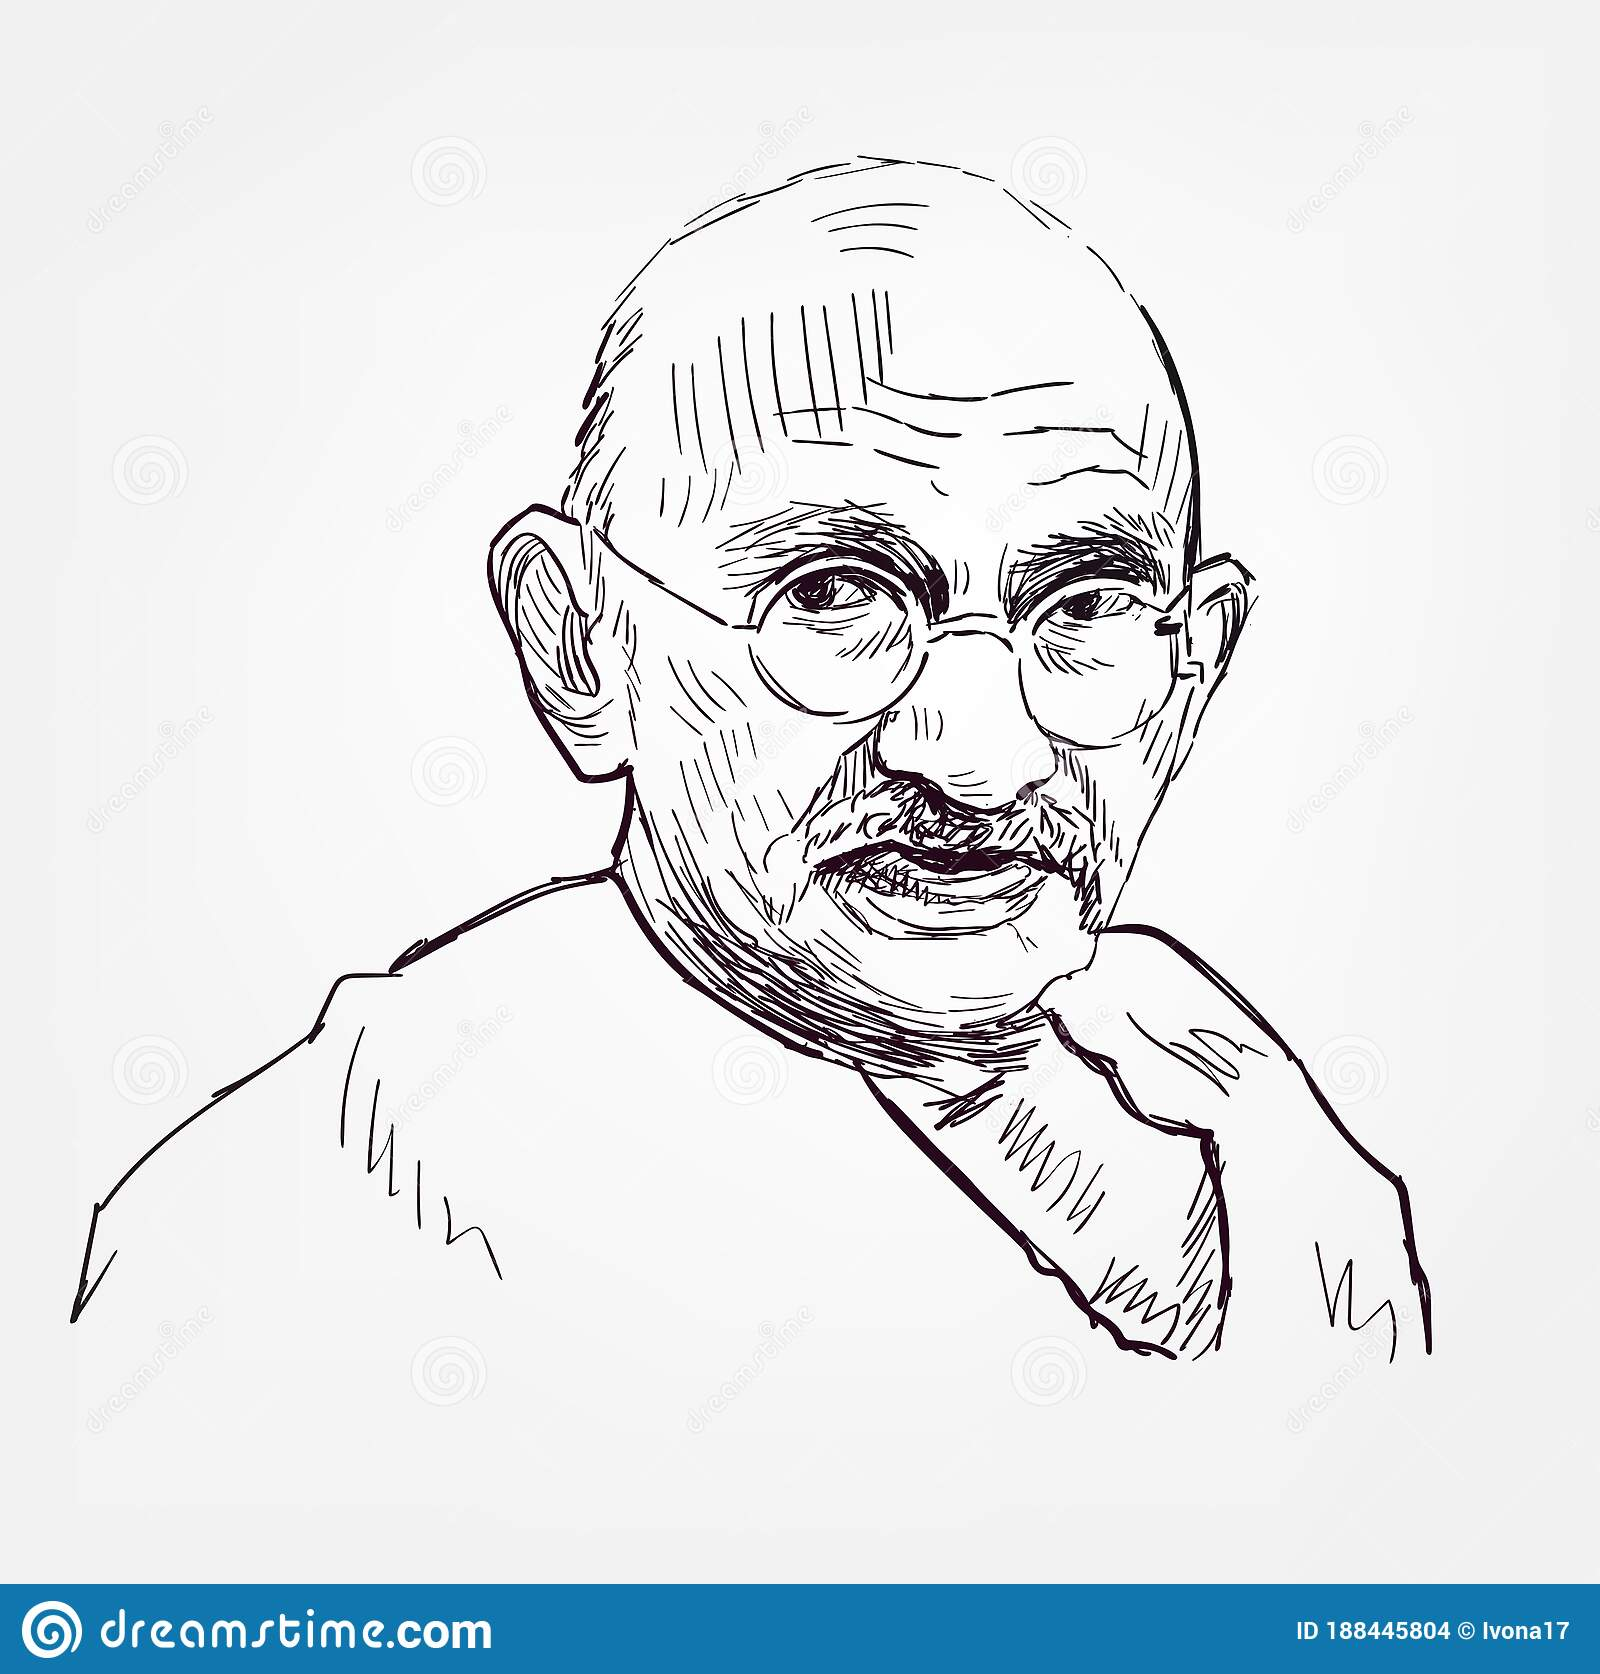 Mahatma Gandhi Portrait Stock Illustrations 159 Mahatma Gandhi Portrait Stock Illustrations Vectors Clipart Dreamstime